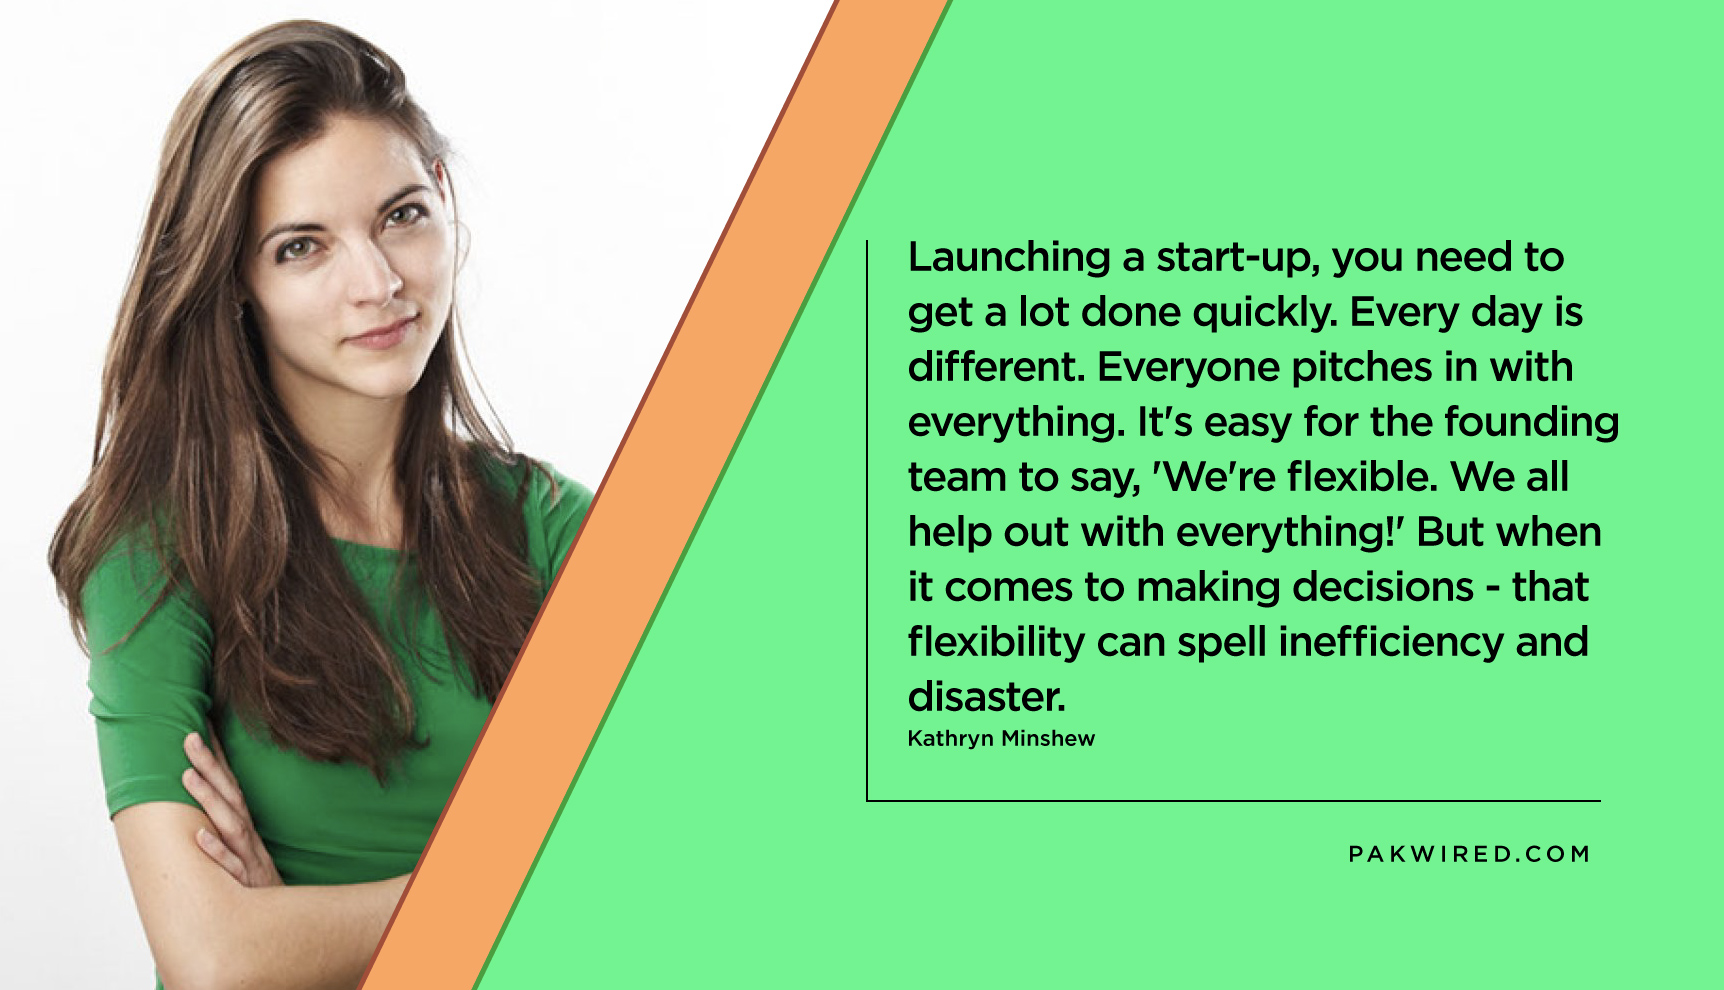 Launching a start-up, you need to get a lot done quickly. Every day is different. Everyone pitches in with everything